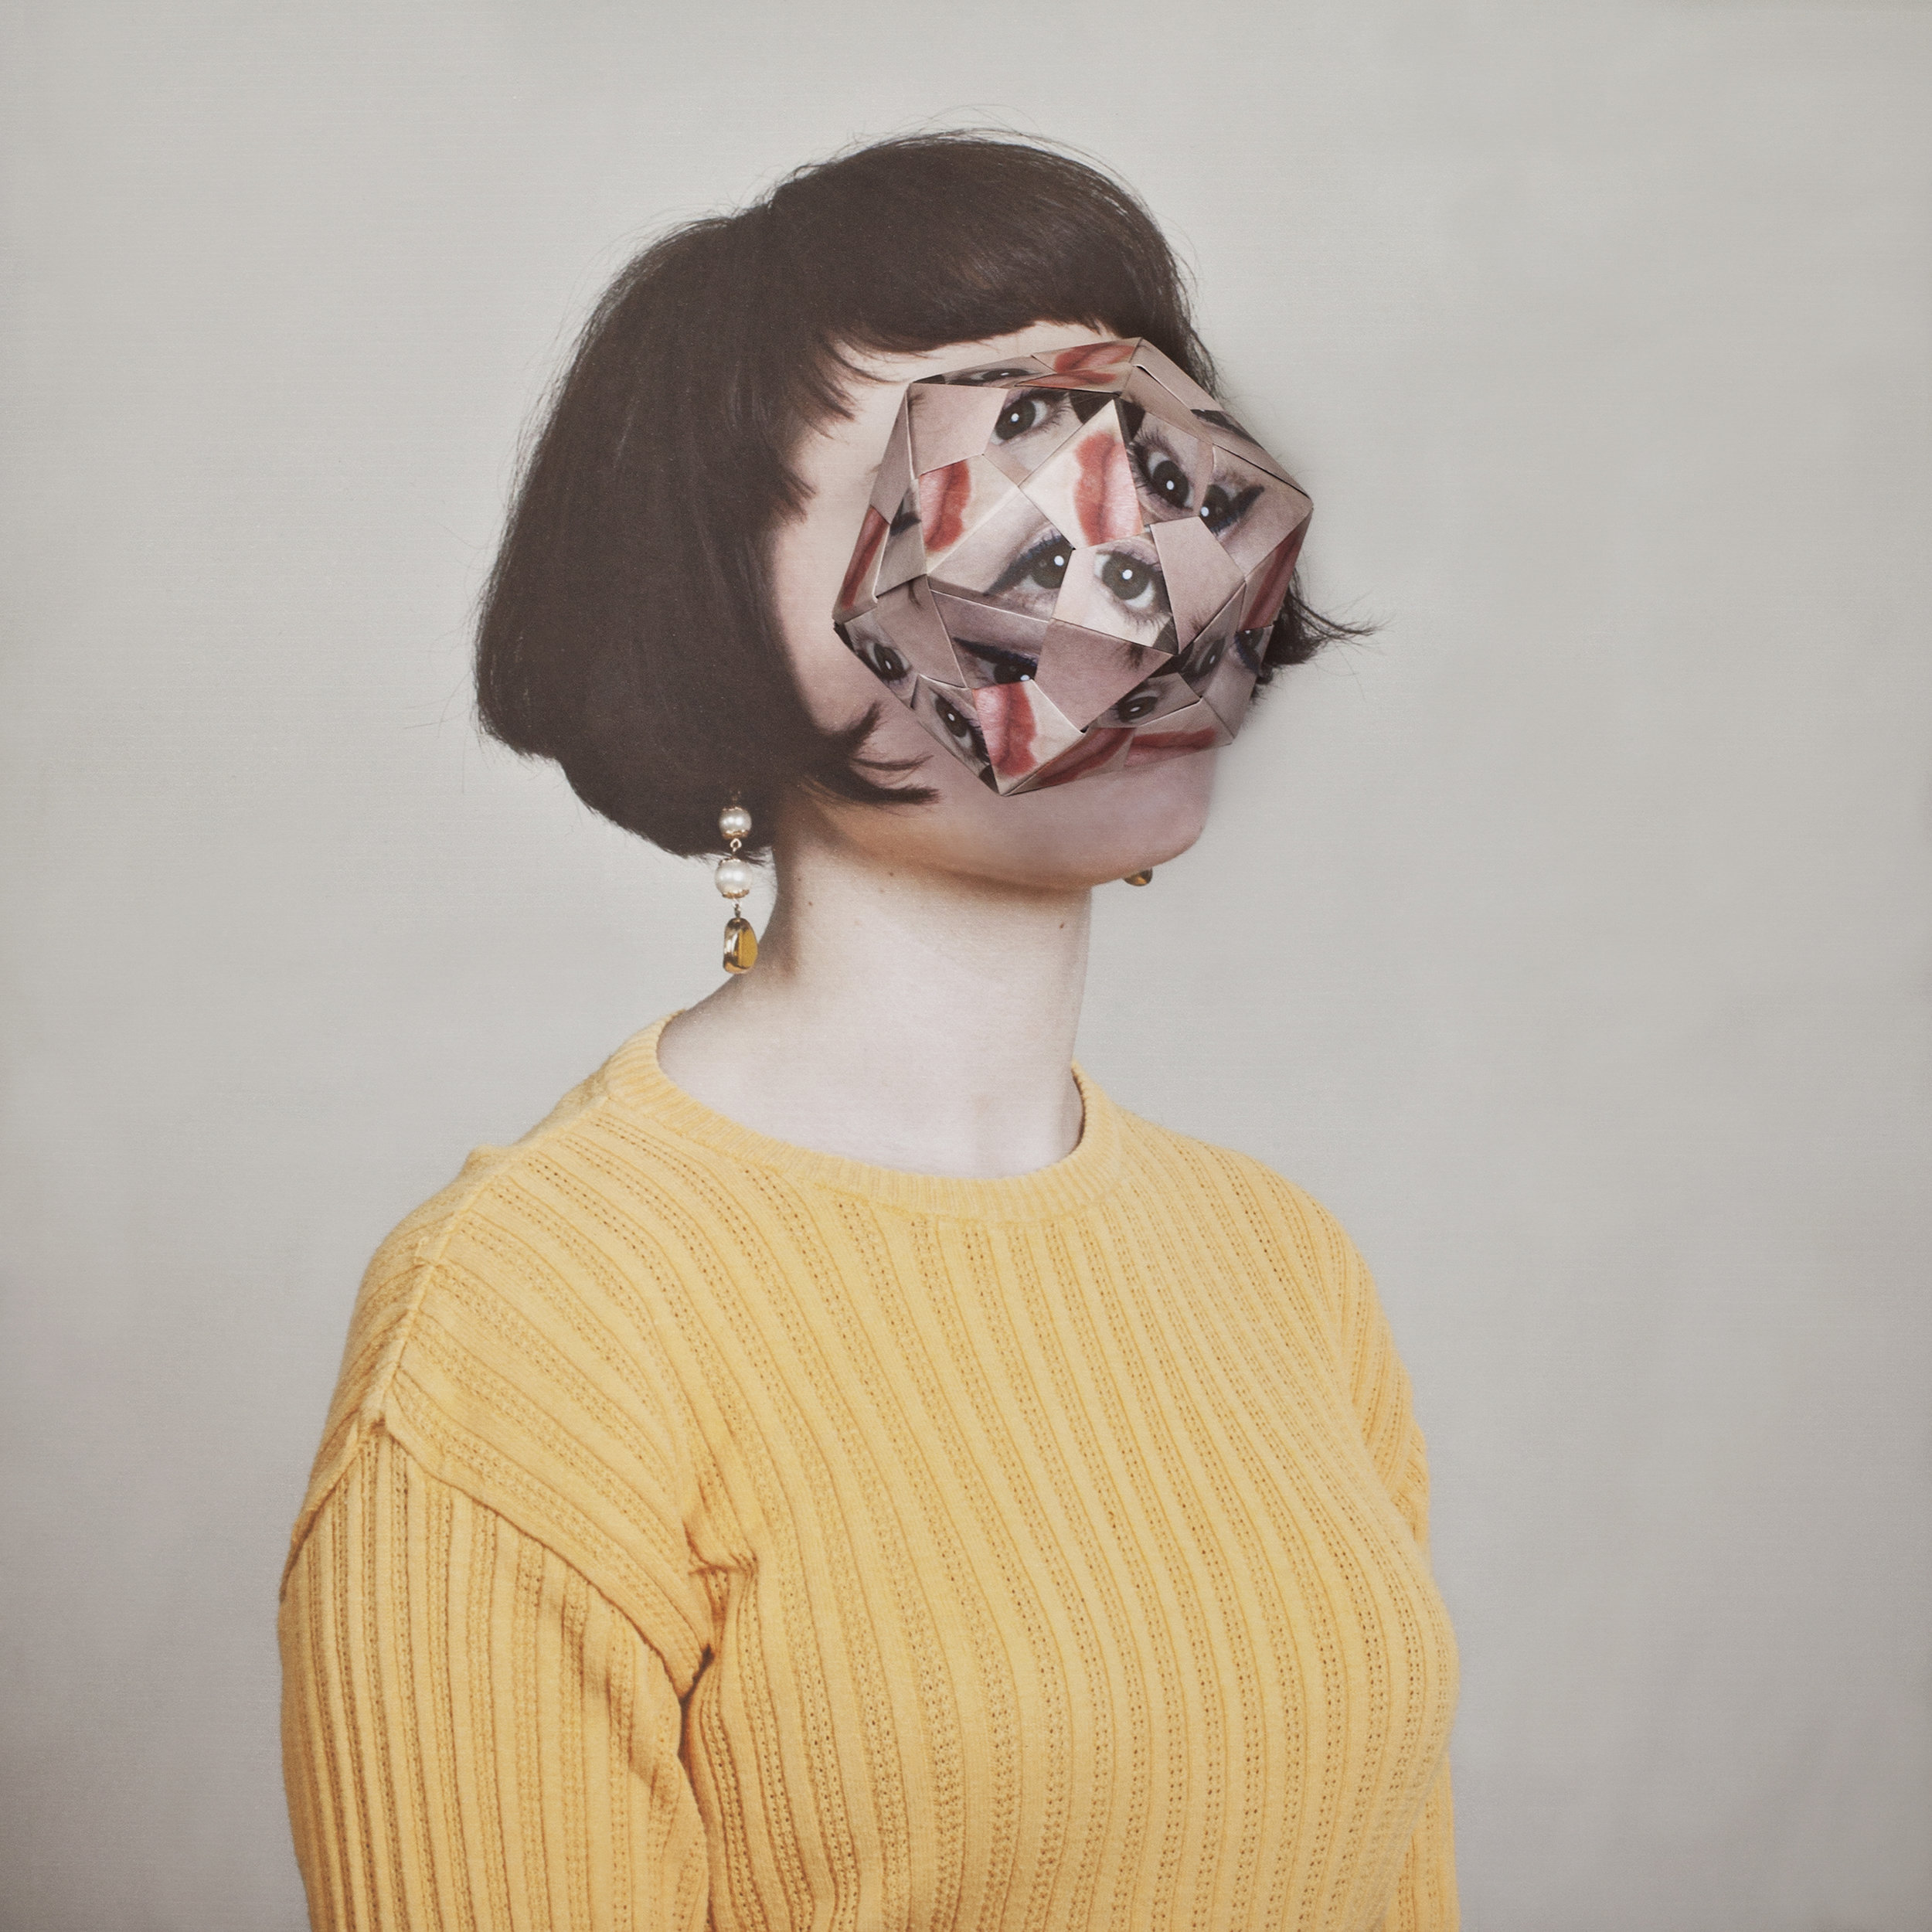 Alma Haser,  Patient No. 3 (Cassie) , 2013  Digital pigment print, 60 x 60 cm (approx. 24 x 24 in), edition of 10   Inquire